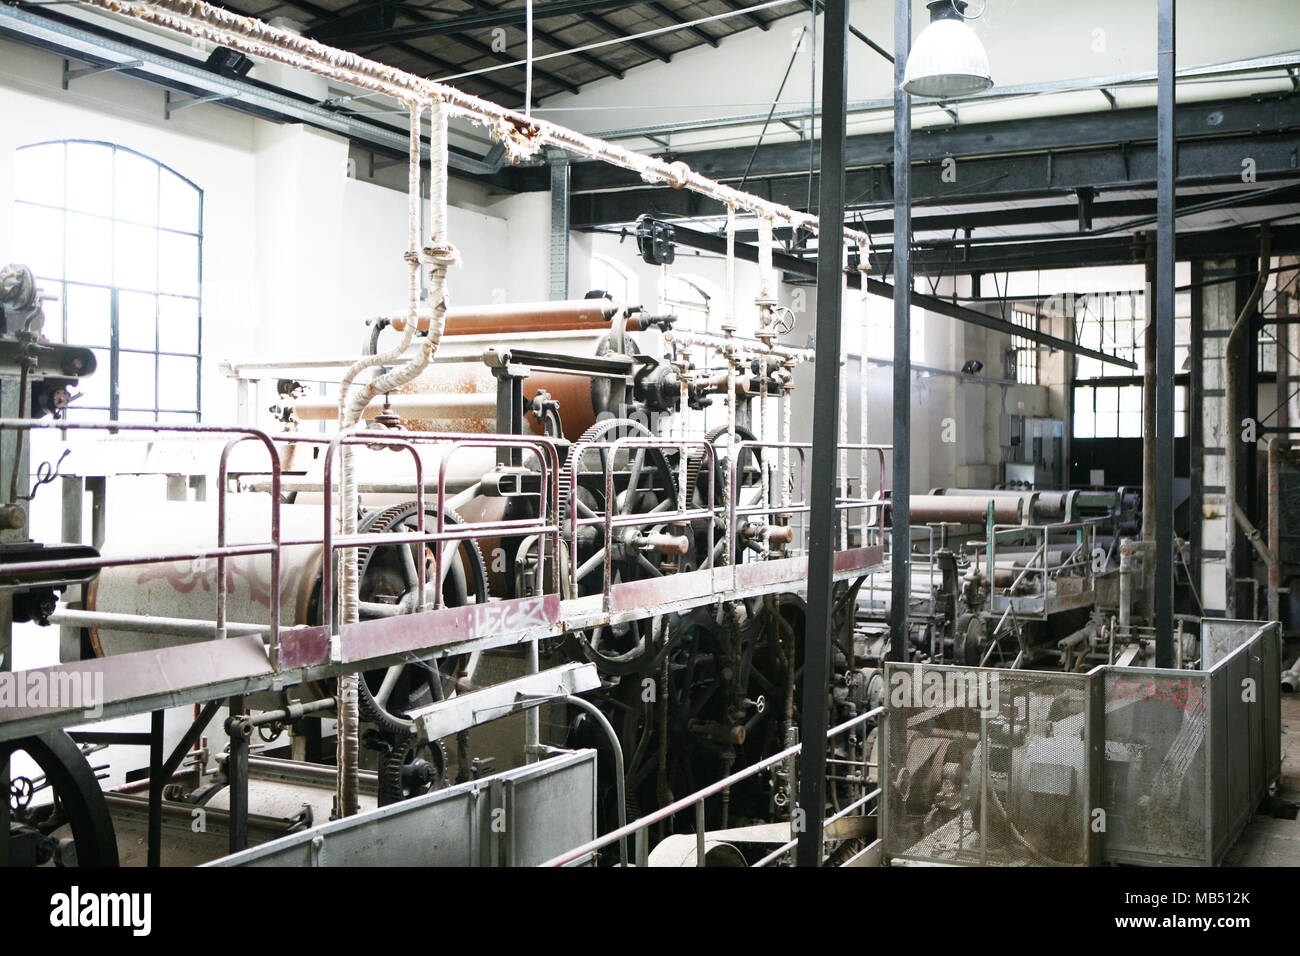 Old run down industrial paper plant machinery - Stock Image